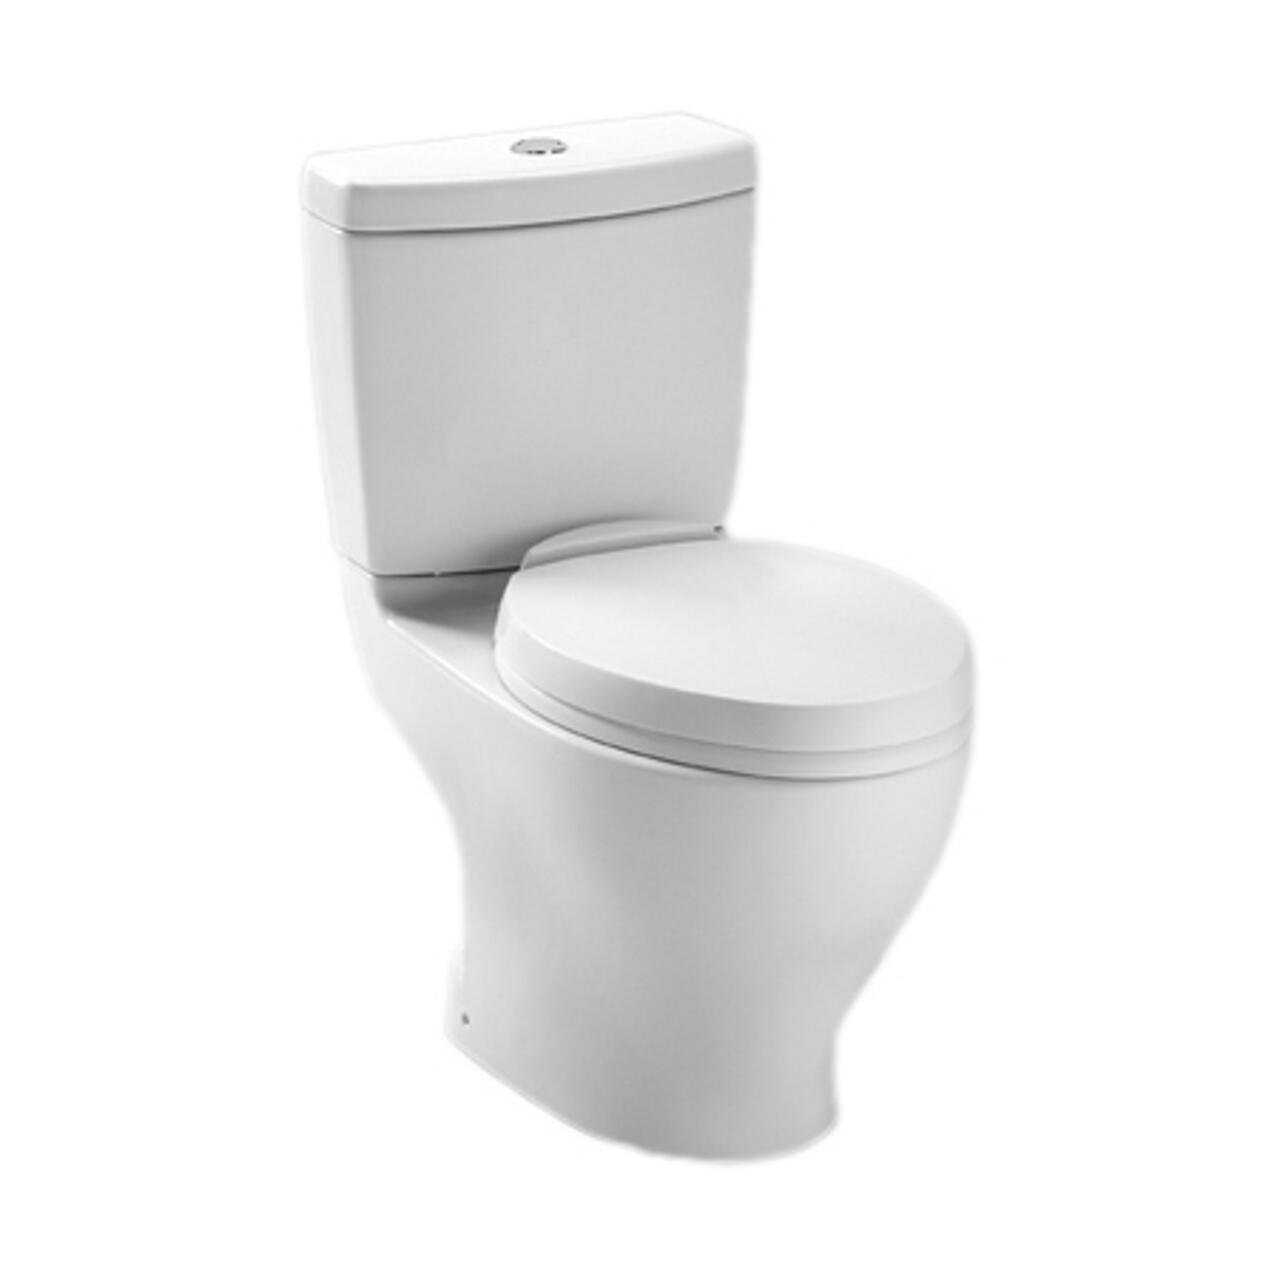 TOTO Aquia Toilet Review - Big Brand with Good Quality? - Shop Toilet